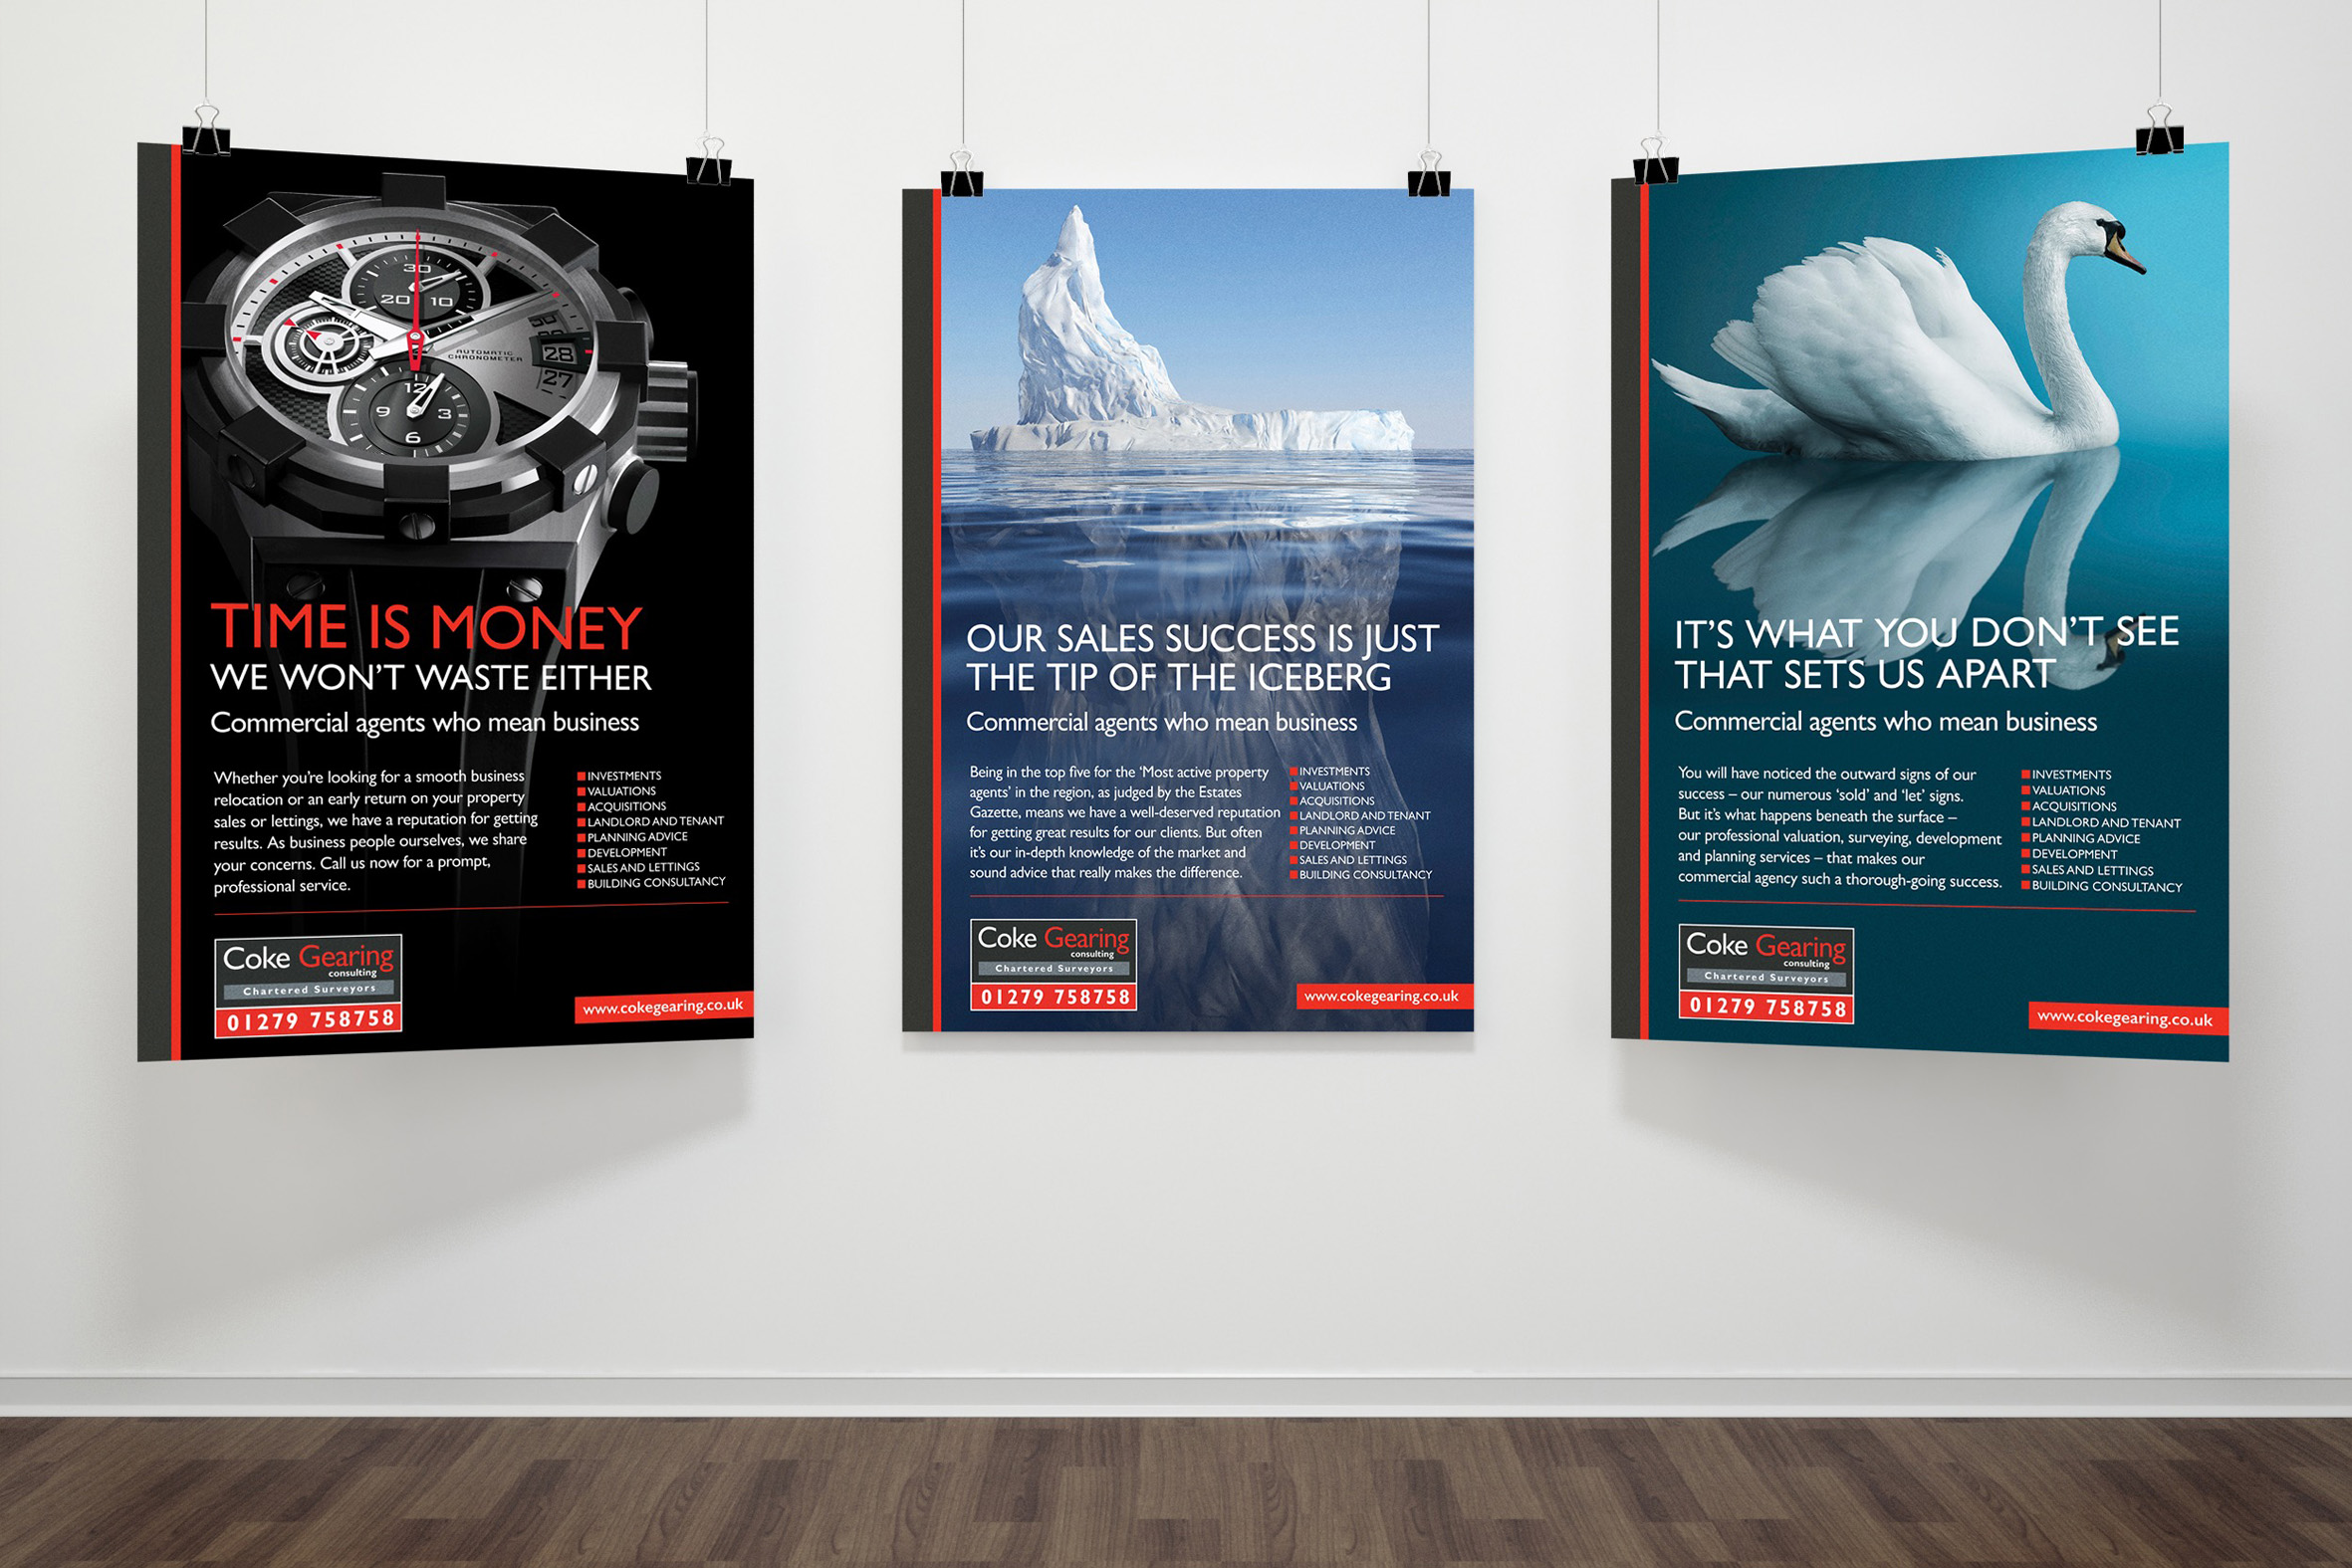 Commercial Property Agents, Coke Gearing, Newspaper and Large Format Advertising